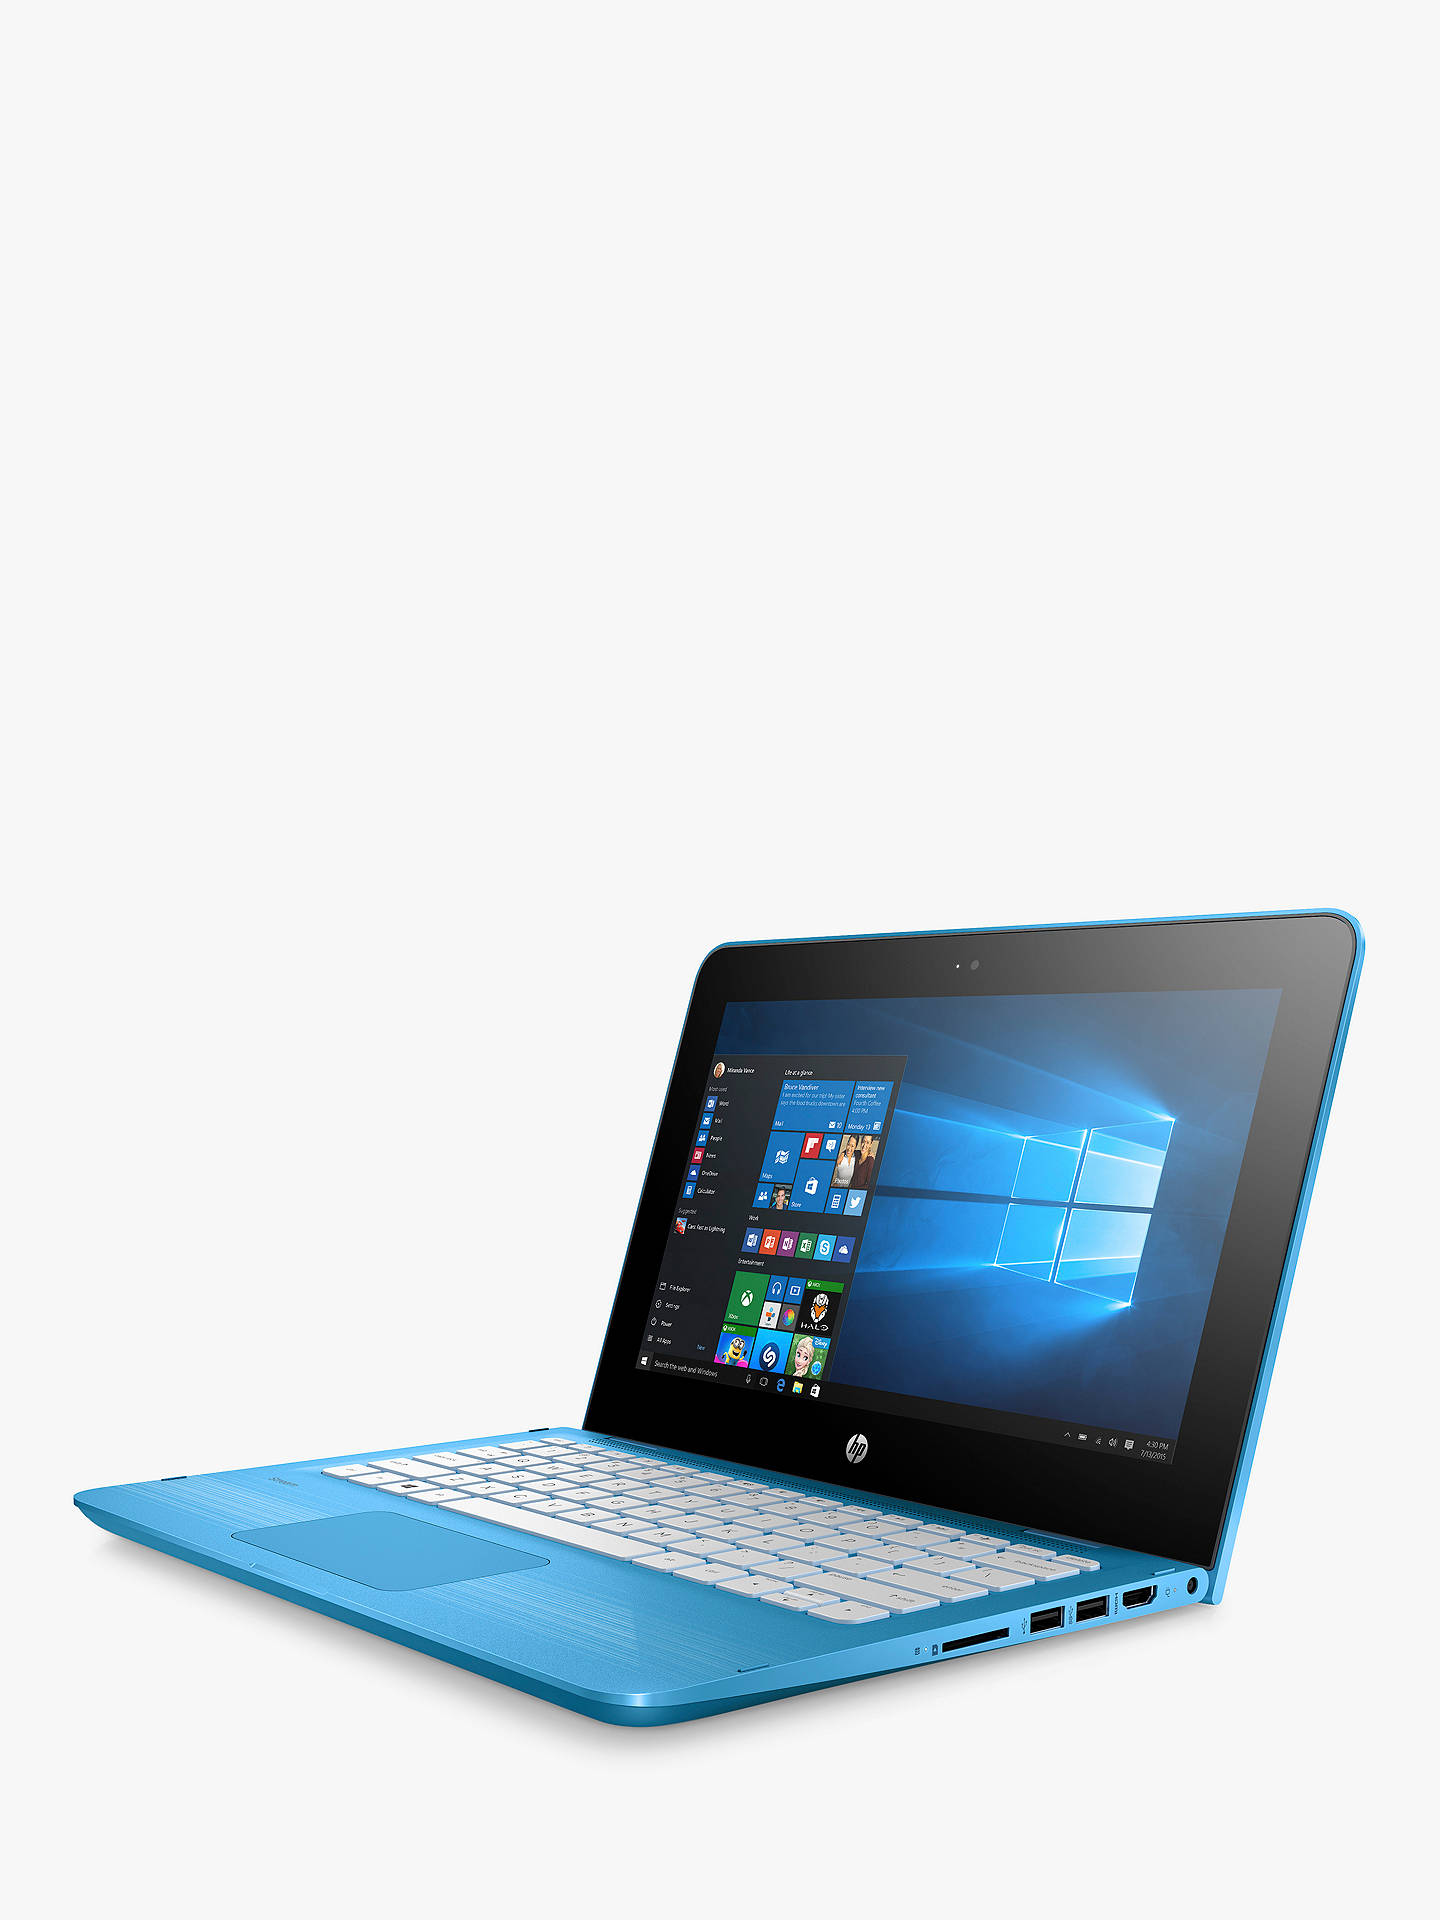 HP Stream x360 11-aa000na Convertible Laptop, Intel Celeron, 2GB RAM, 32GB  eMMC, 1TB OneDrive and Office 365 1 Year Subscription Included, 11 6